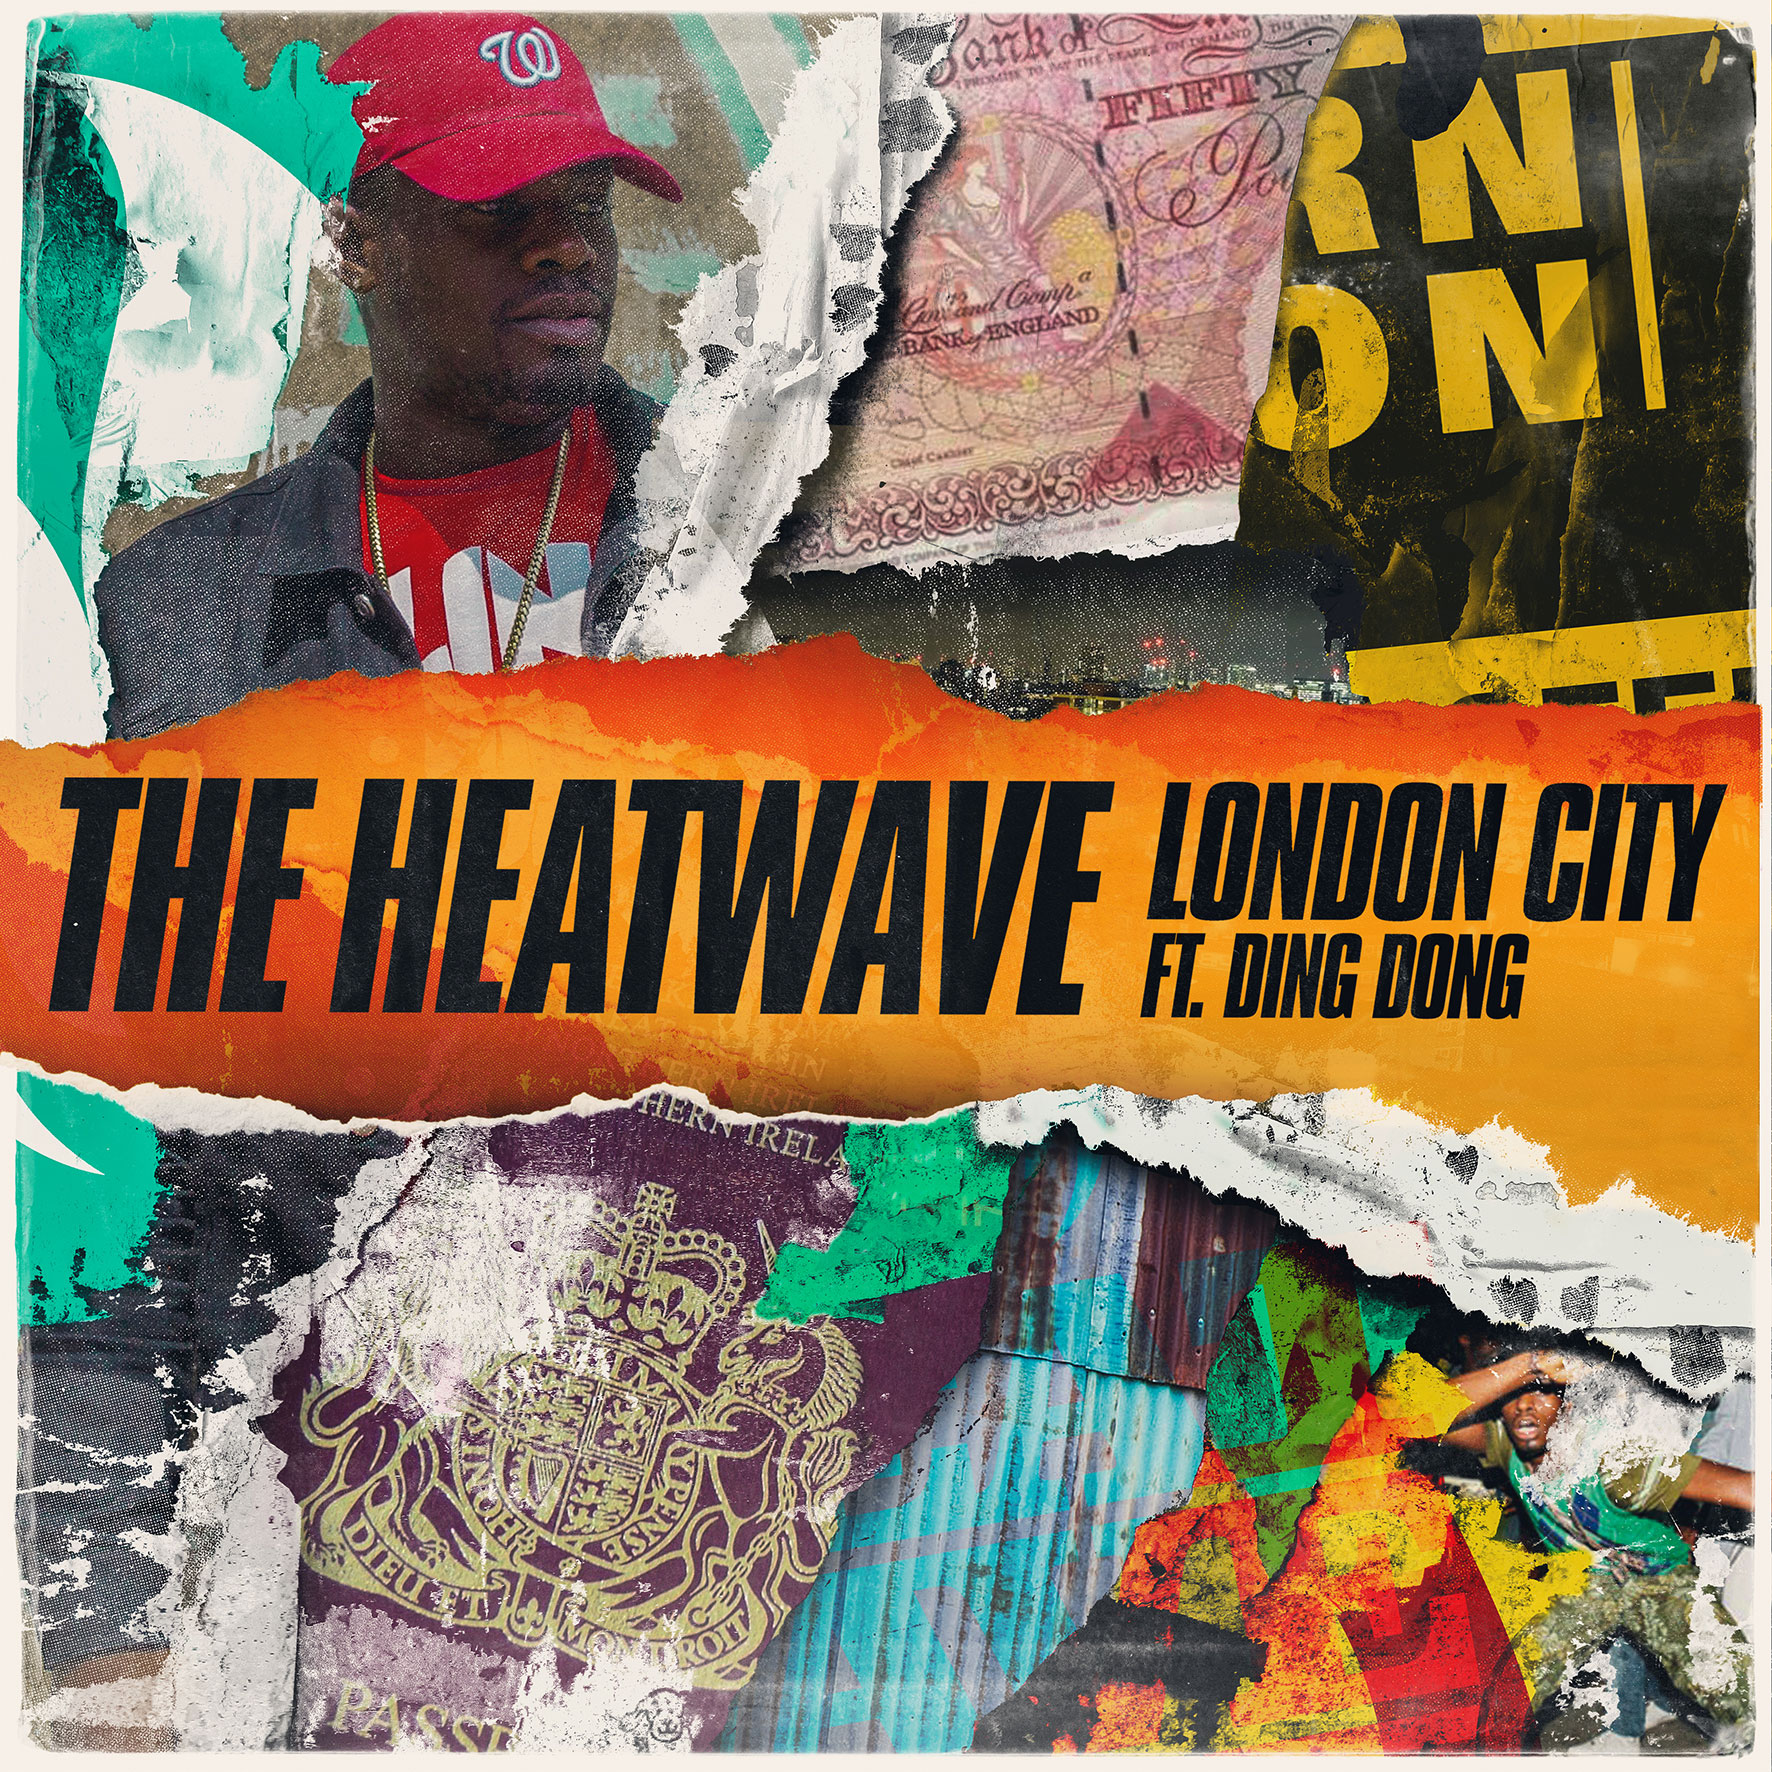 Ding Dong Making Waves In 'London City' With The HeatWave